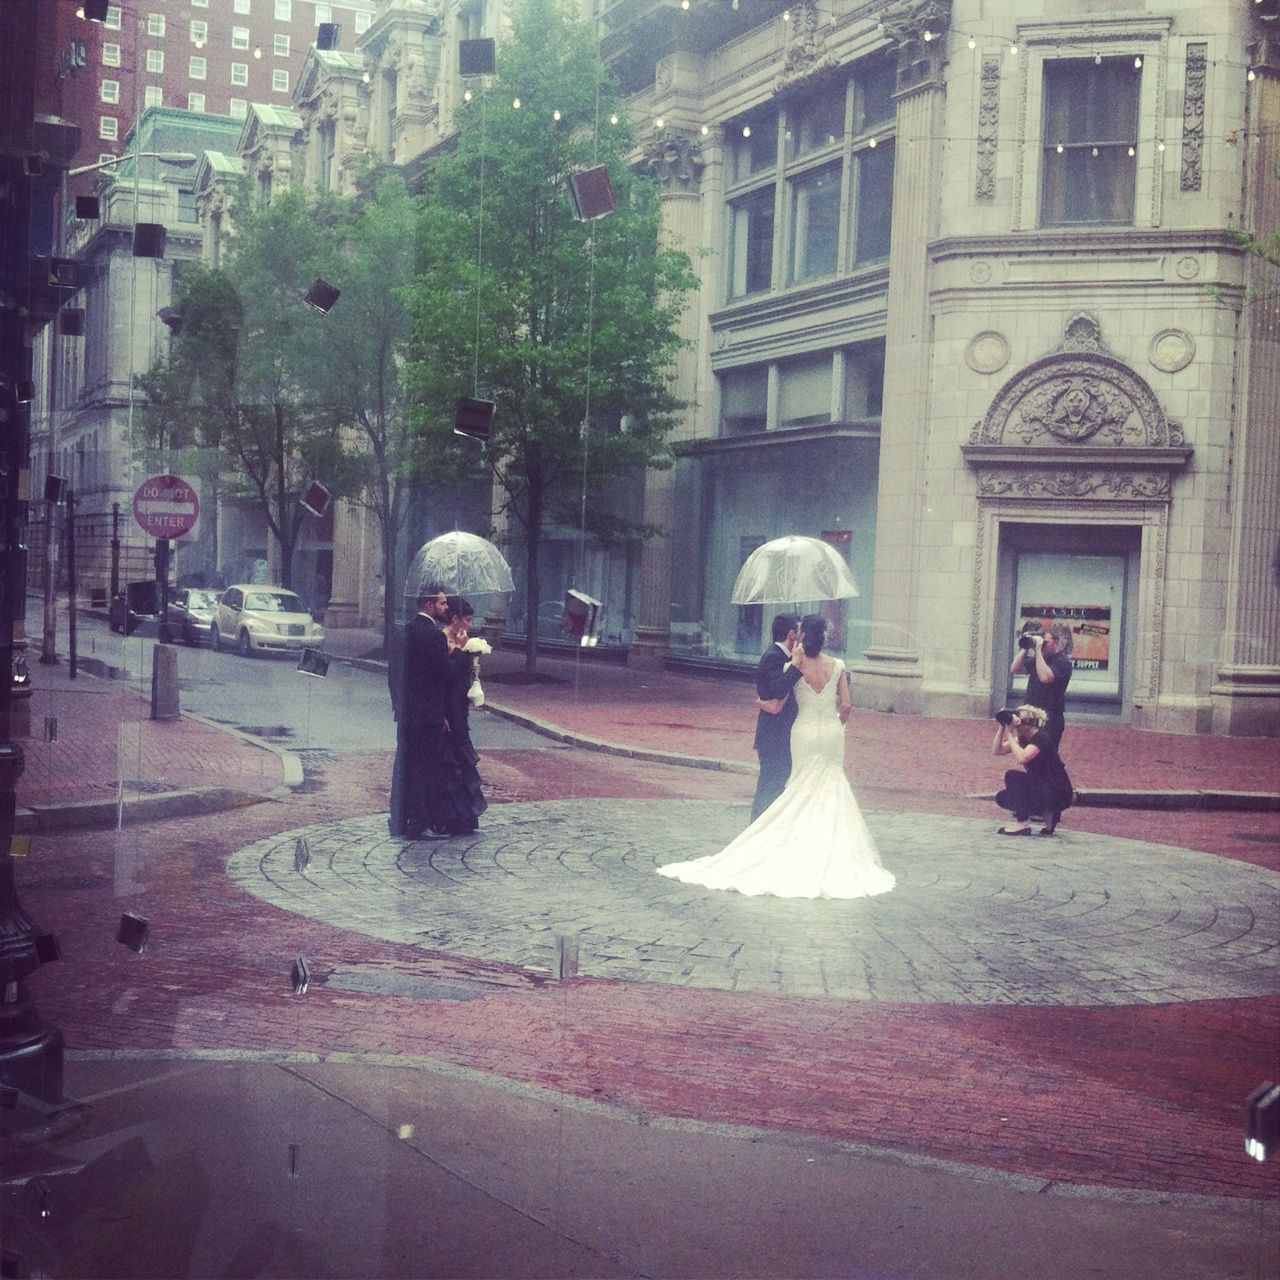 Providence is beautiful even in the rain. Westminster Street wedding shoot.